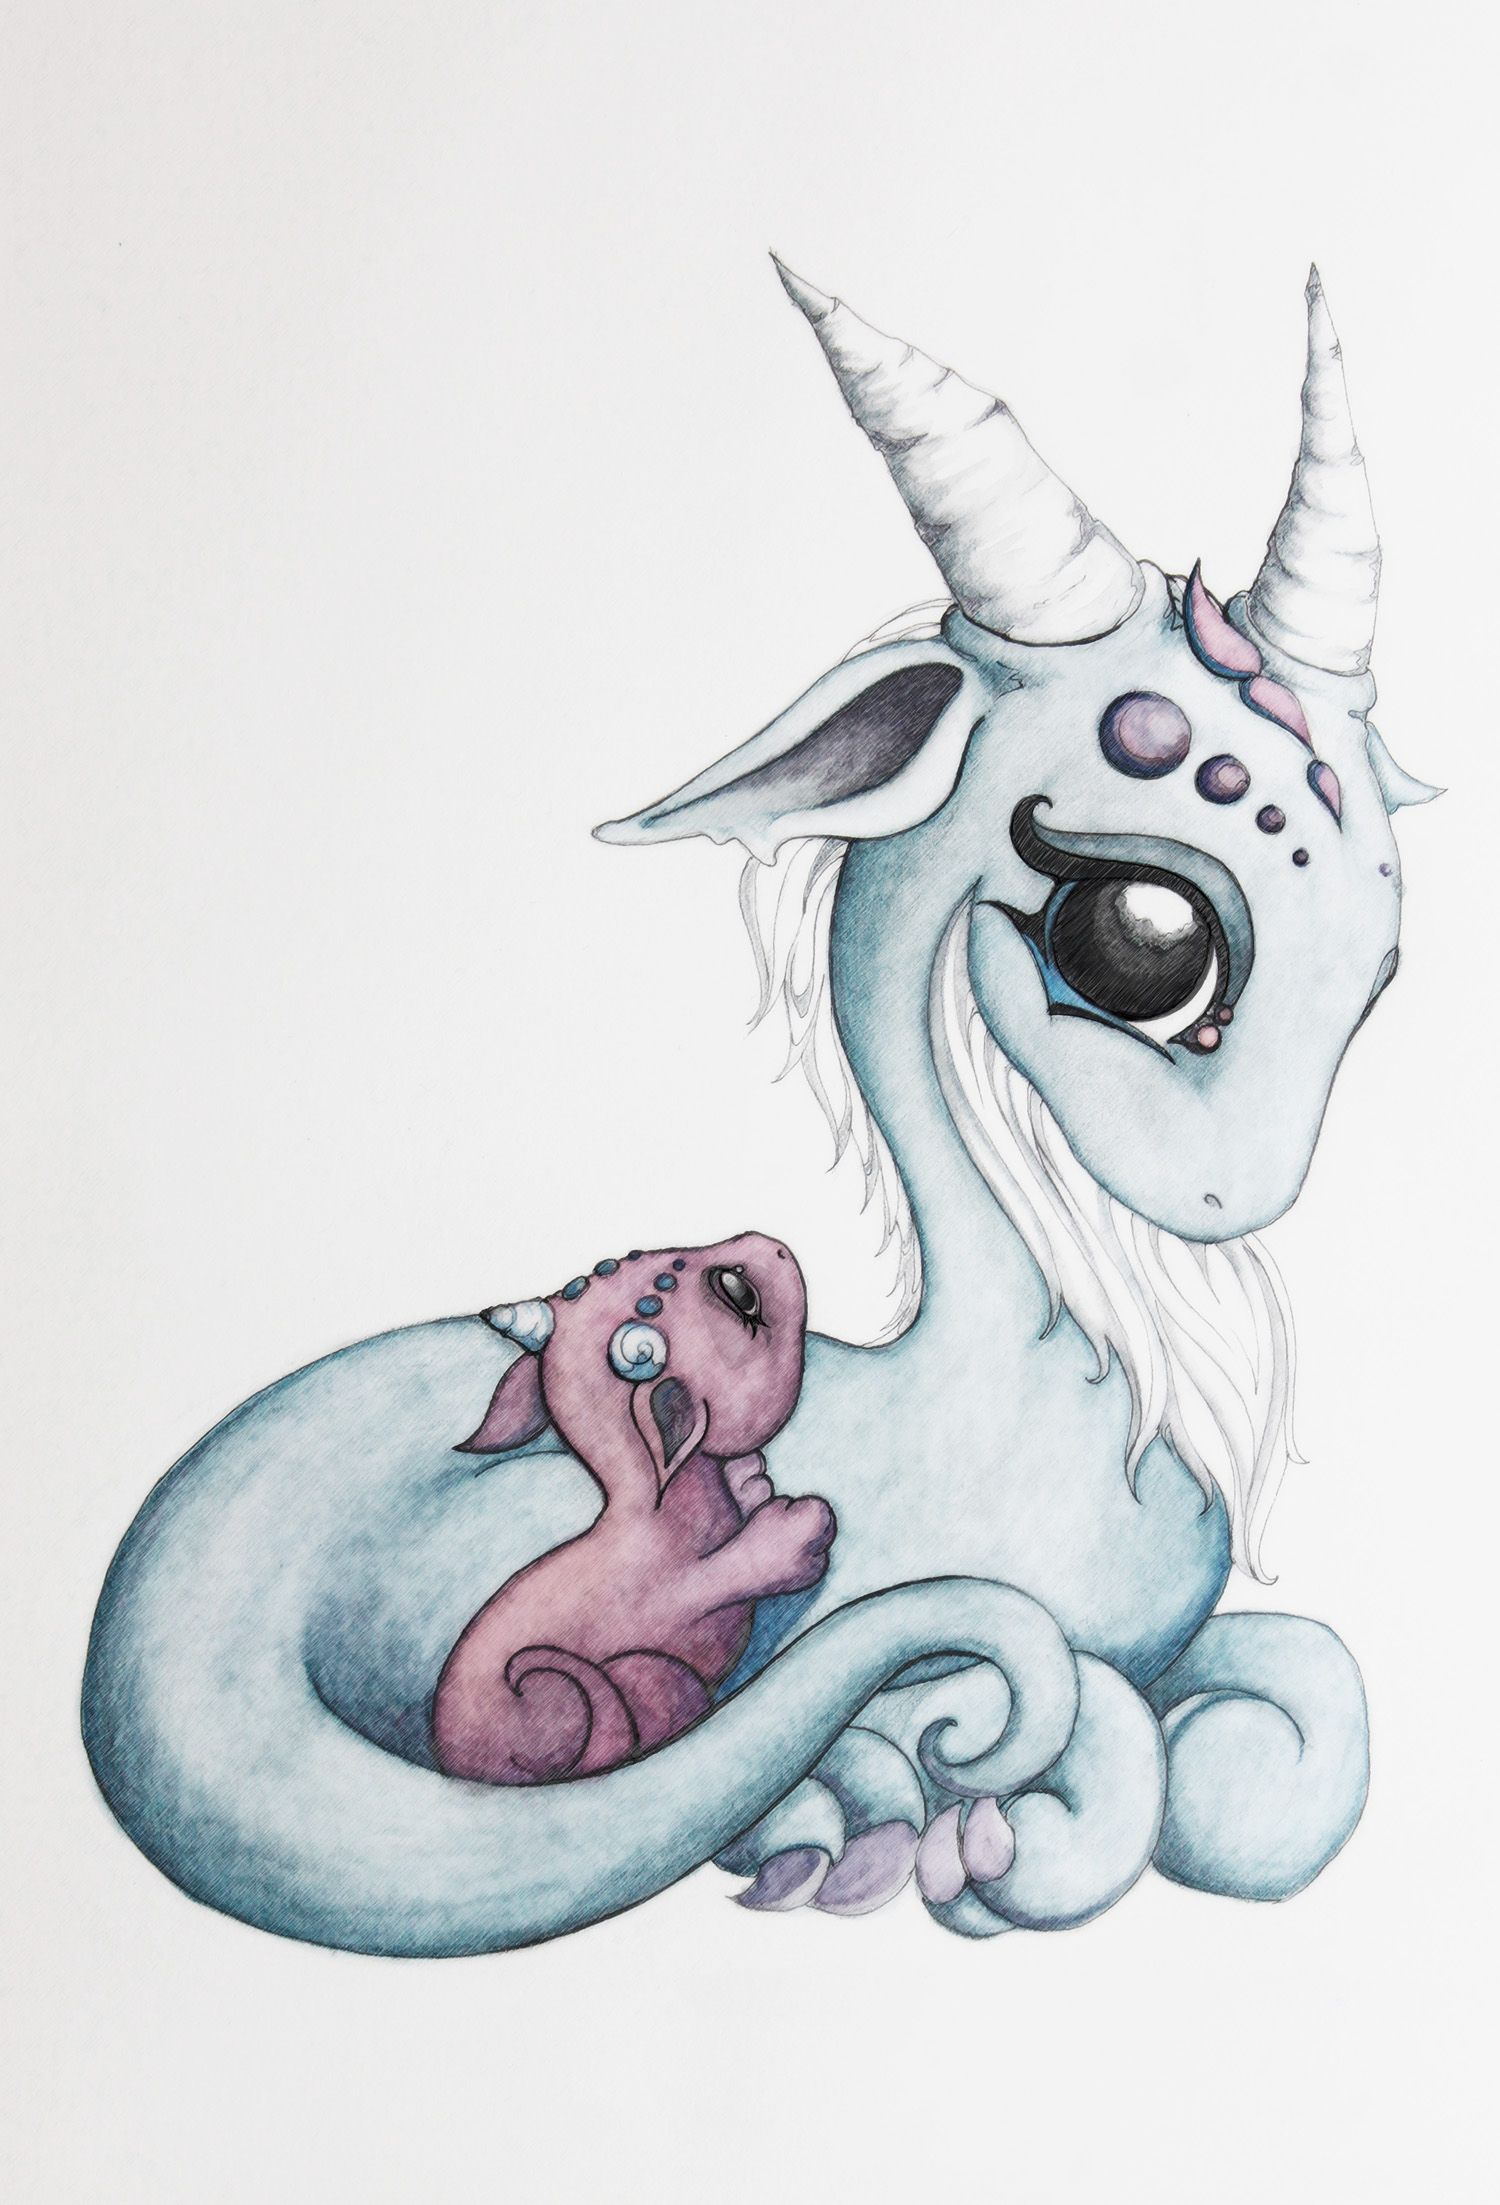 Mama And Baby Dragon Dessin Art Dessin Dessin De Dragon